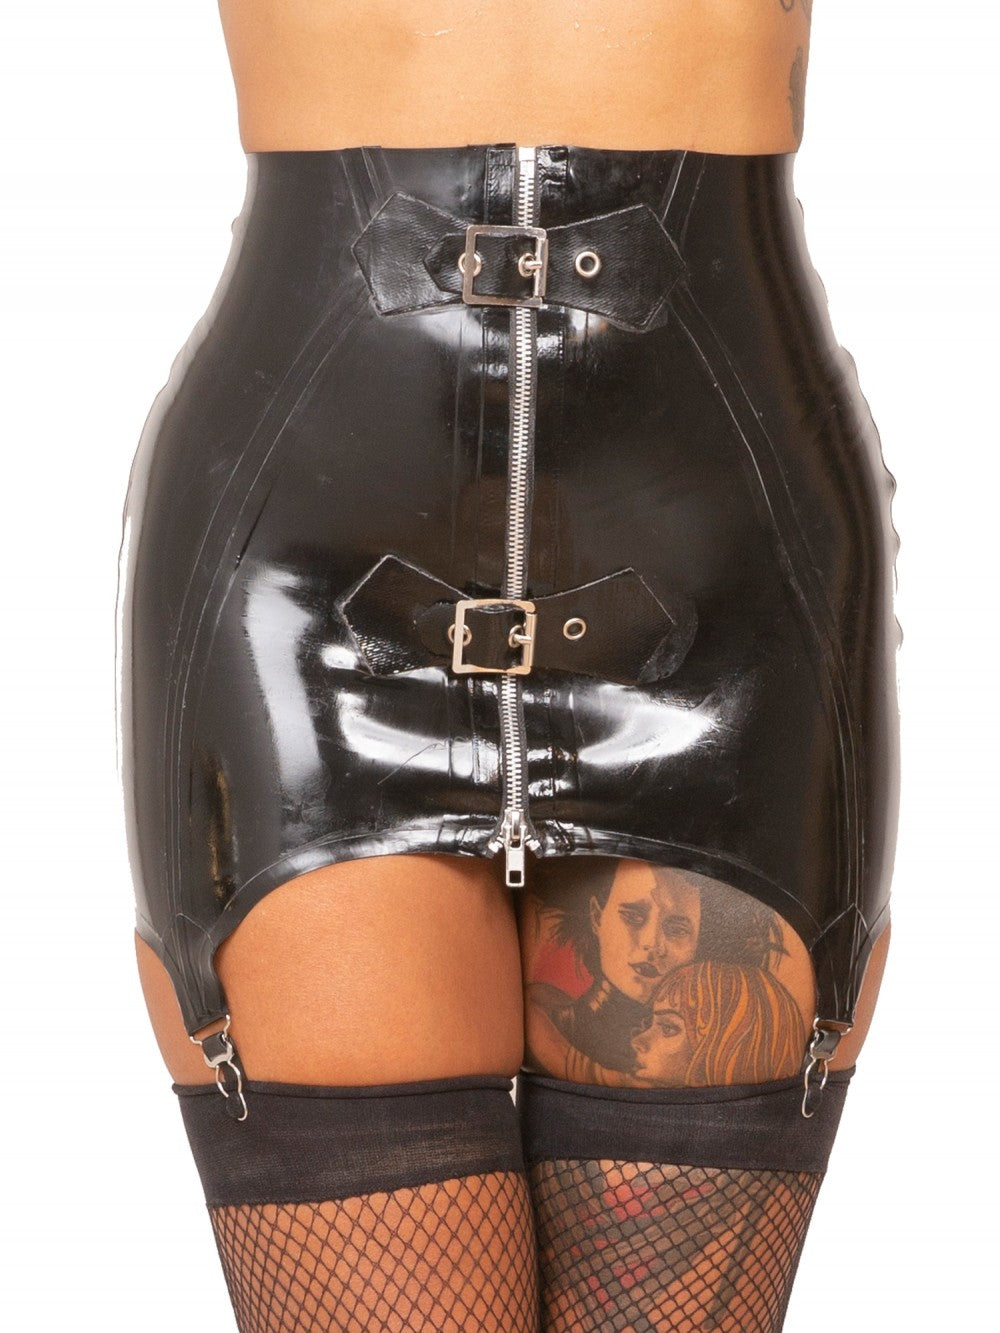 Fetisimo Latex Girdle